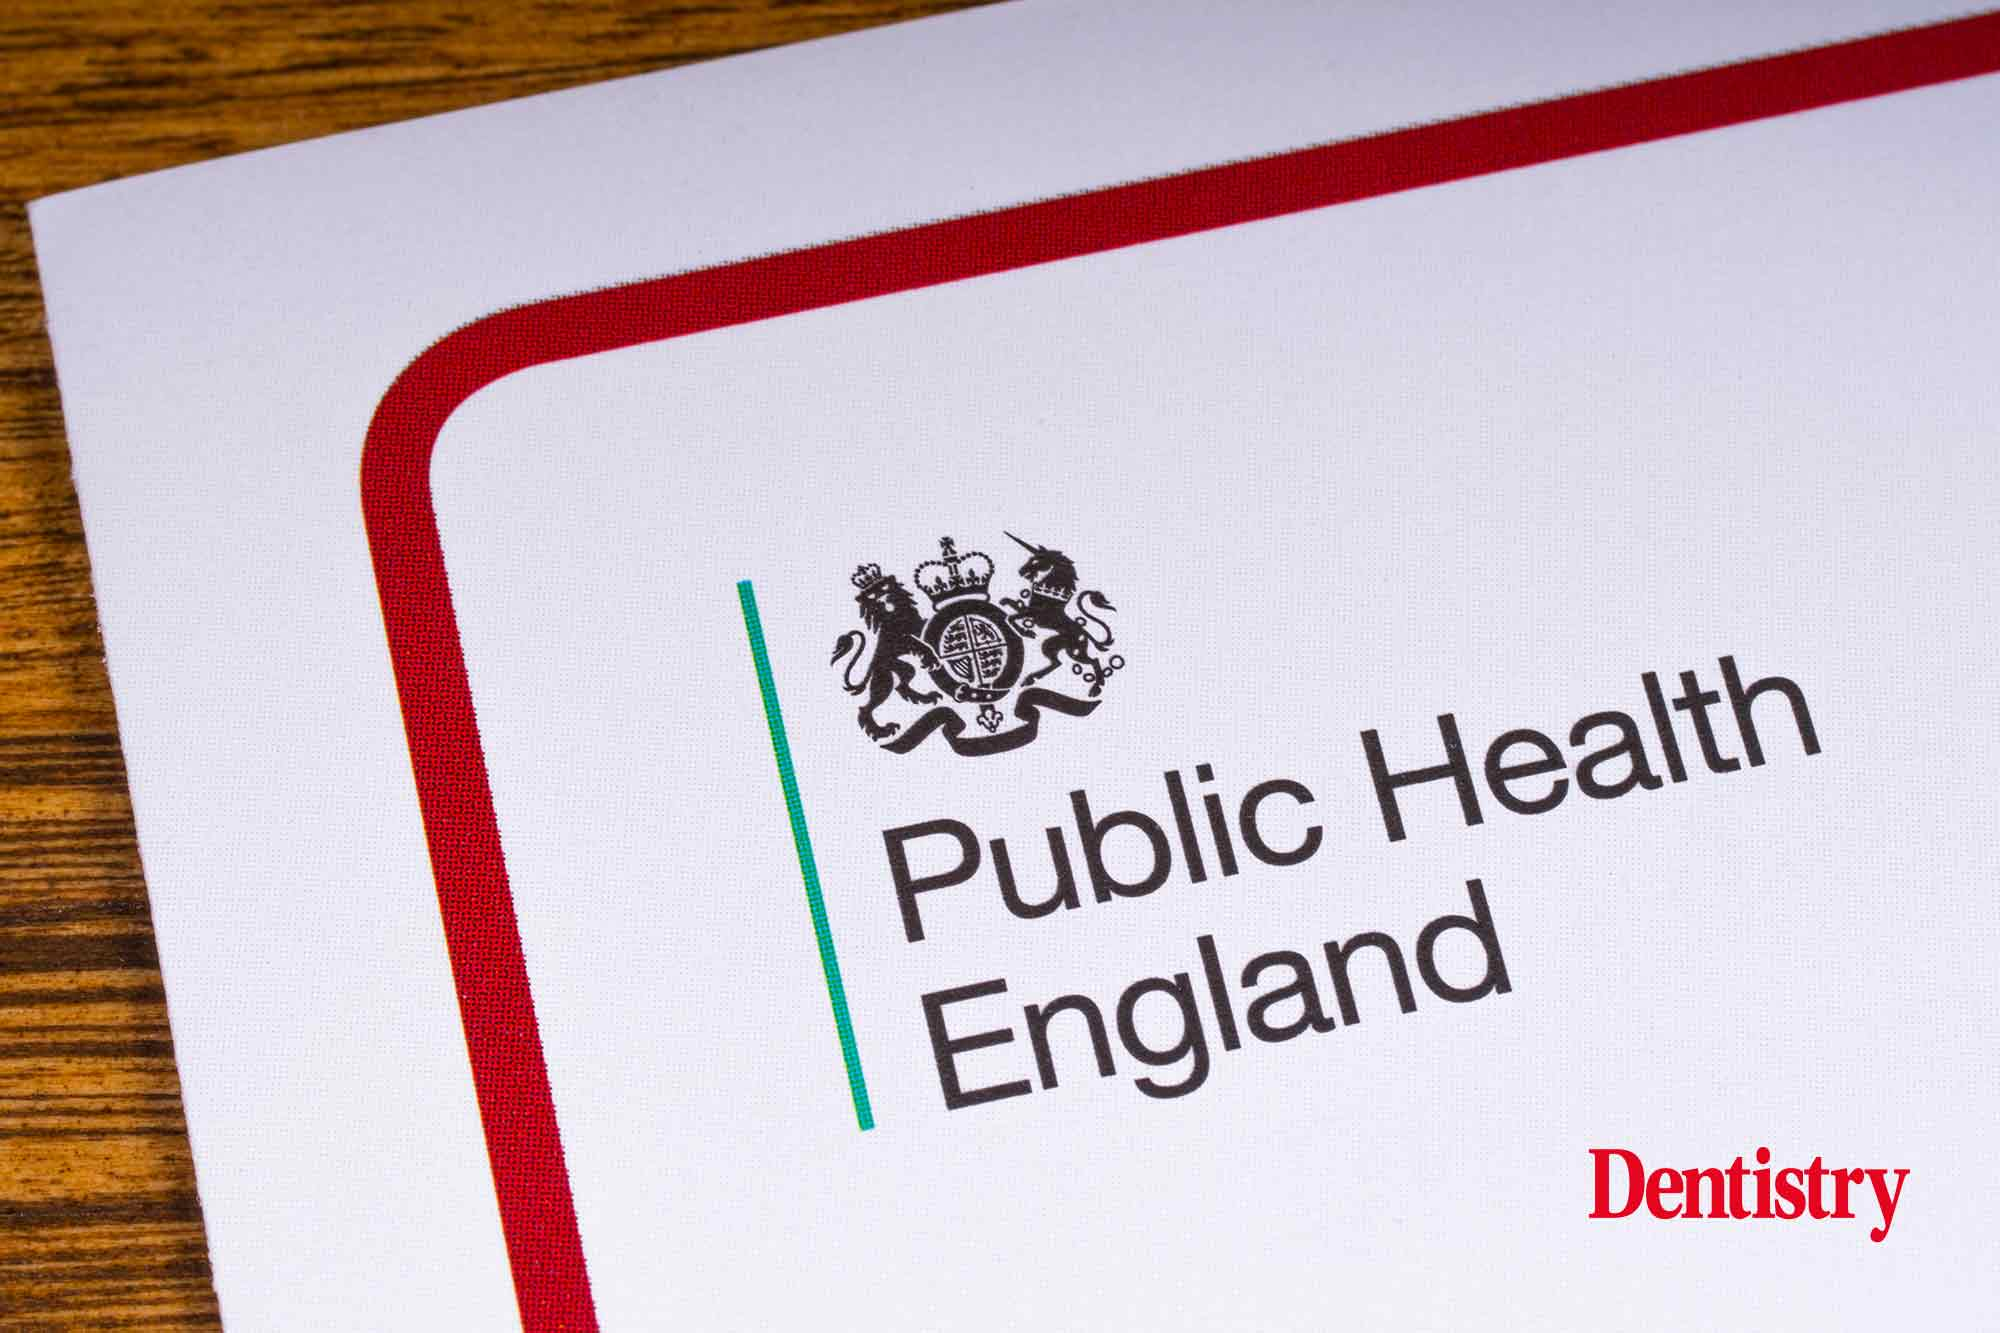 Health experts set up rival body to Public Health England